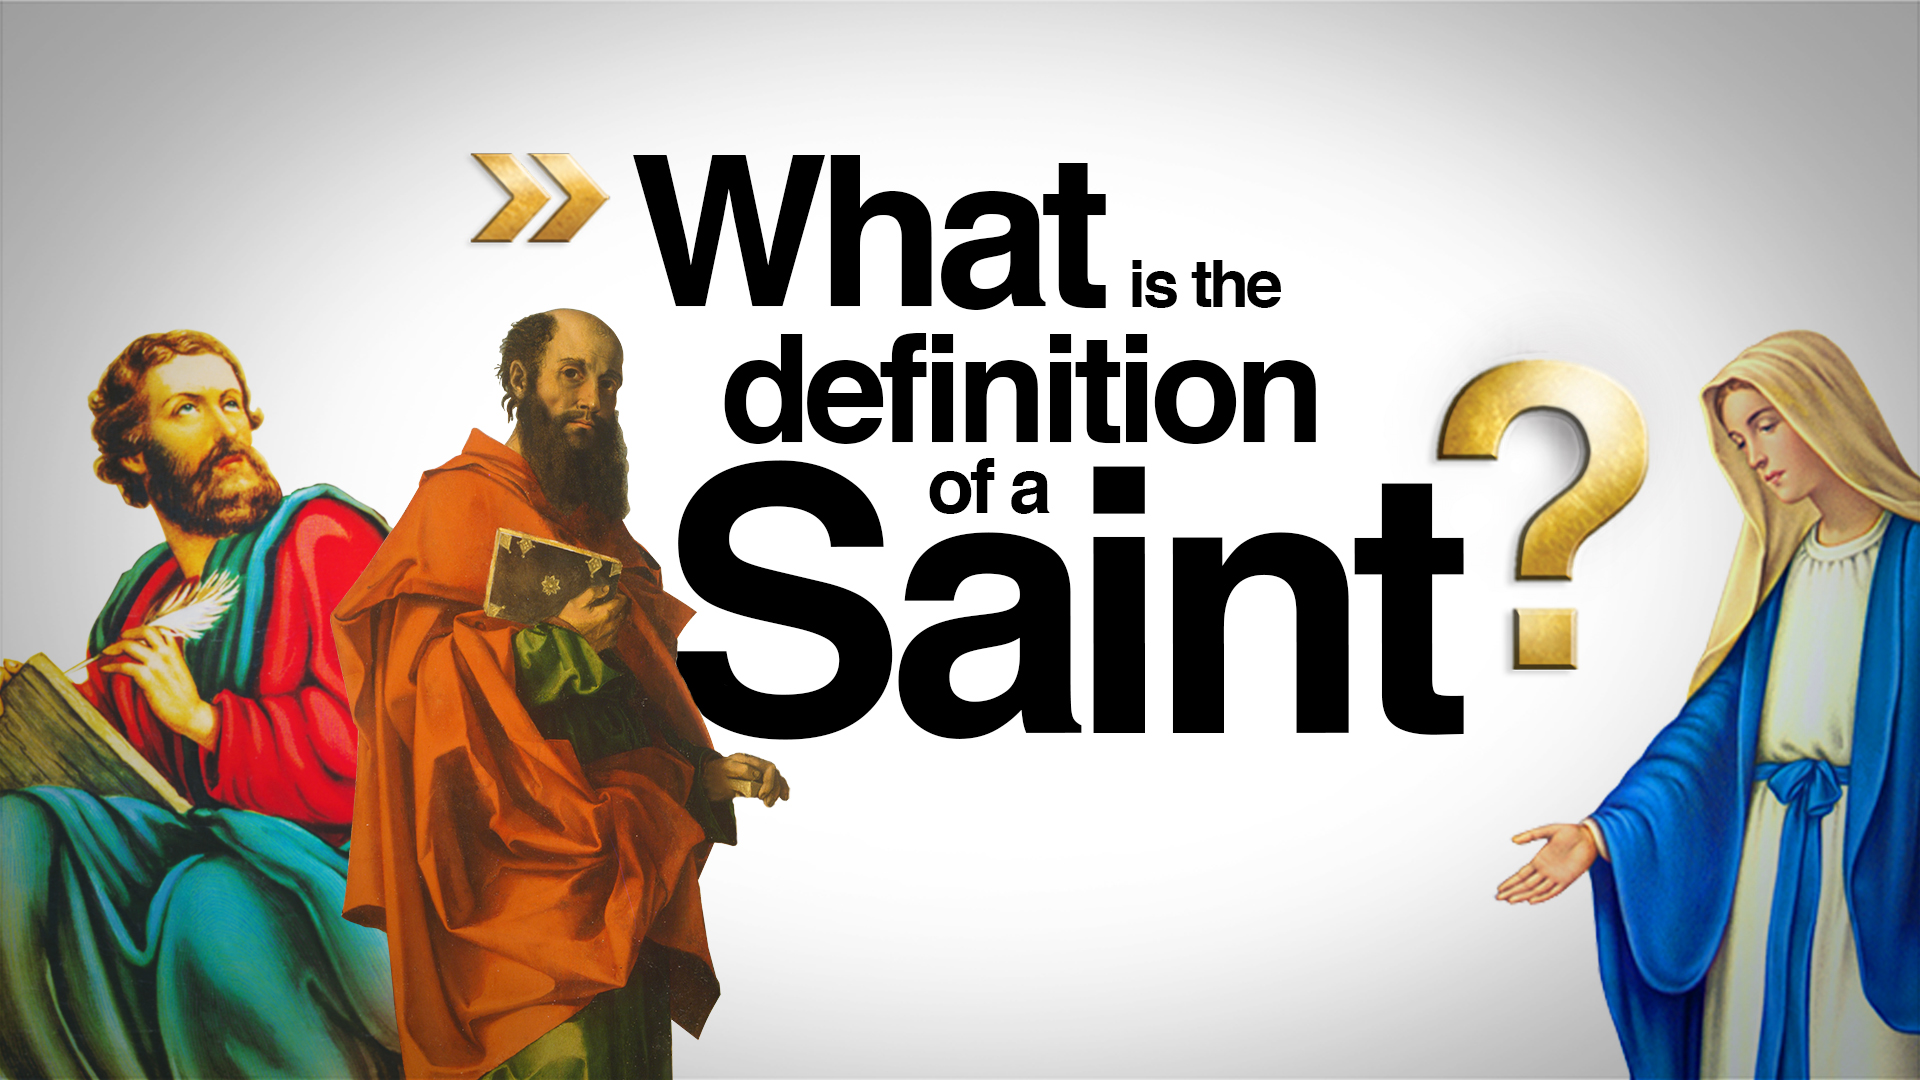 What Is the Definition of a Saint?